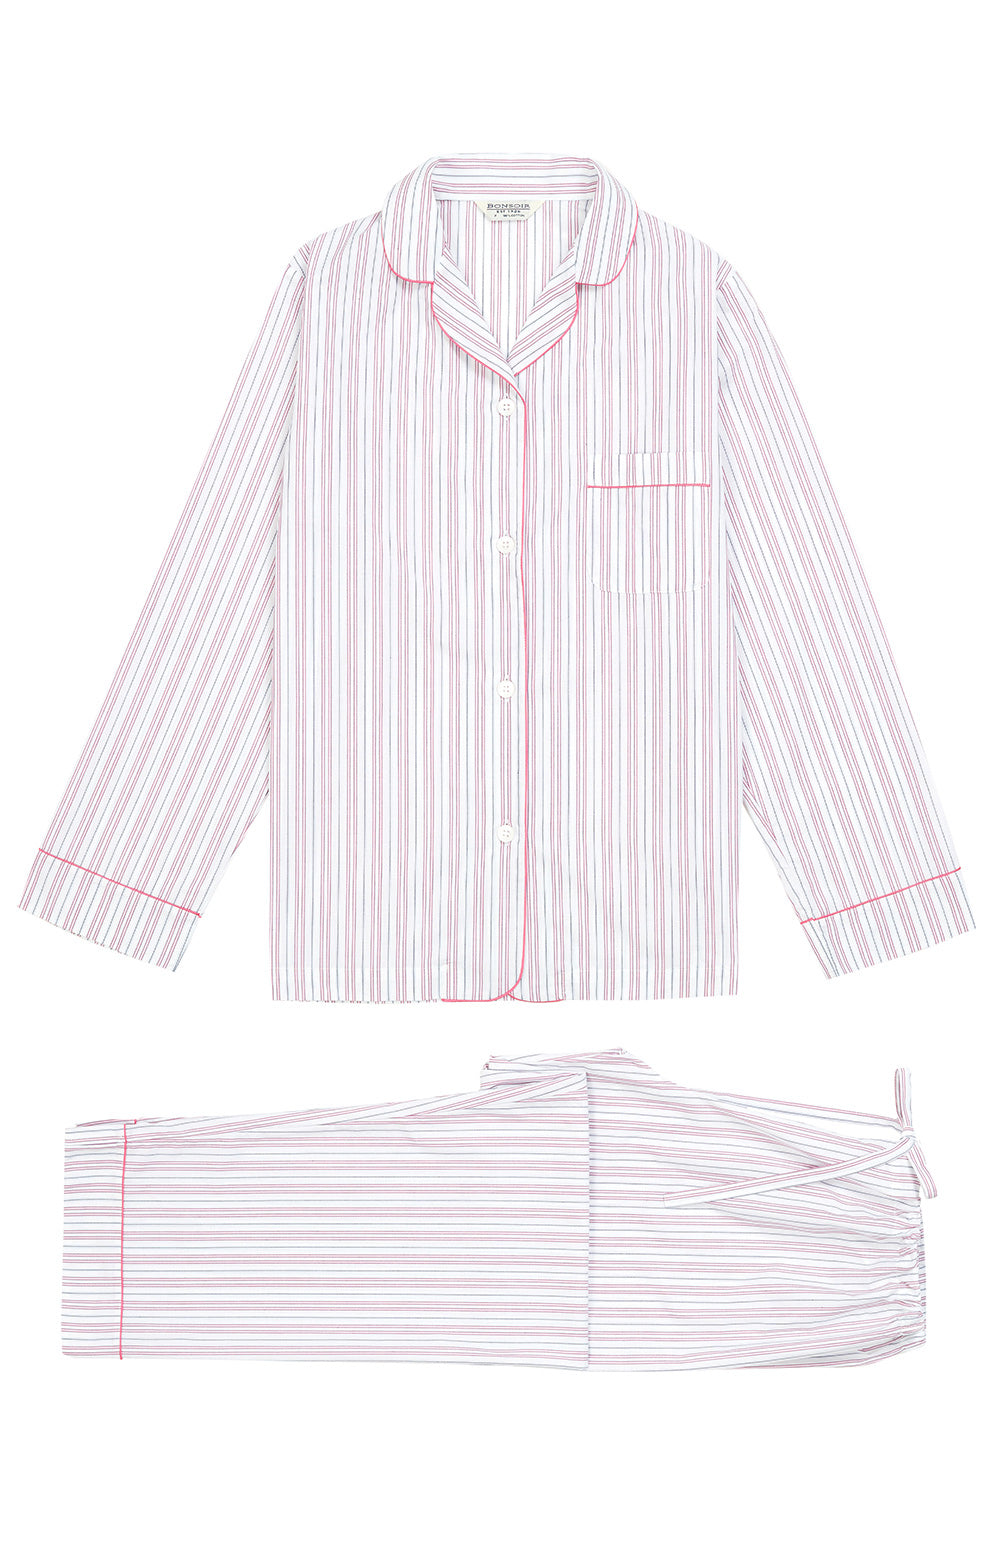 Classic Cotton White and Pink Stripe Pyjamas | Bonsoir of London